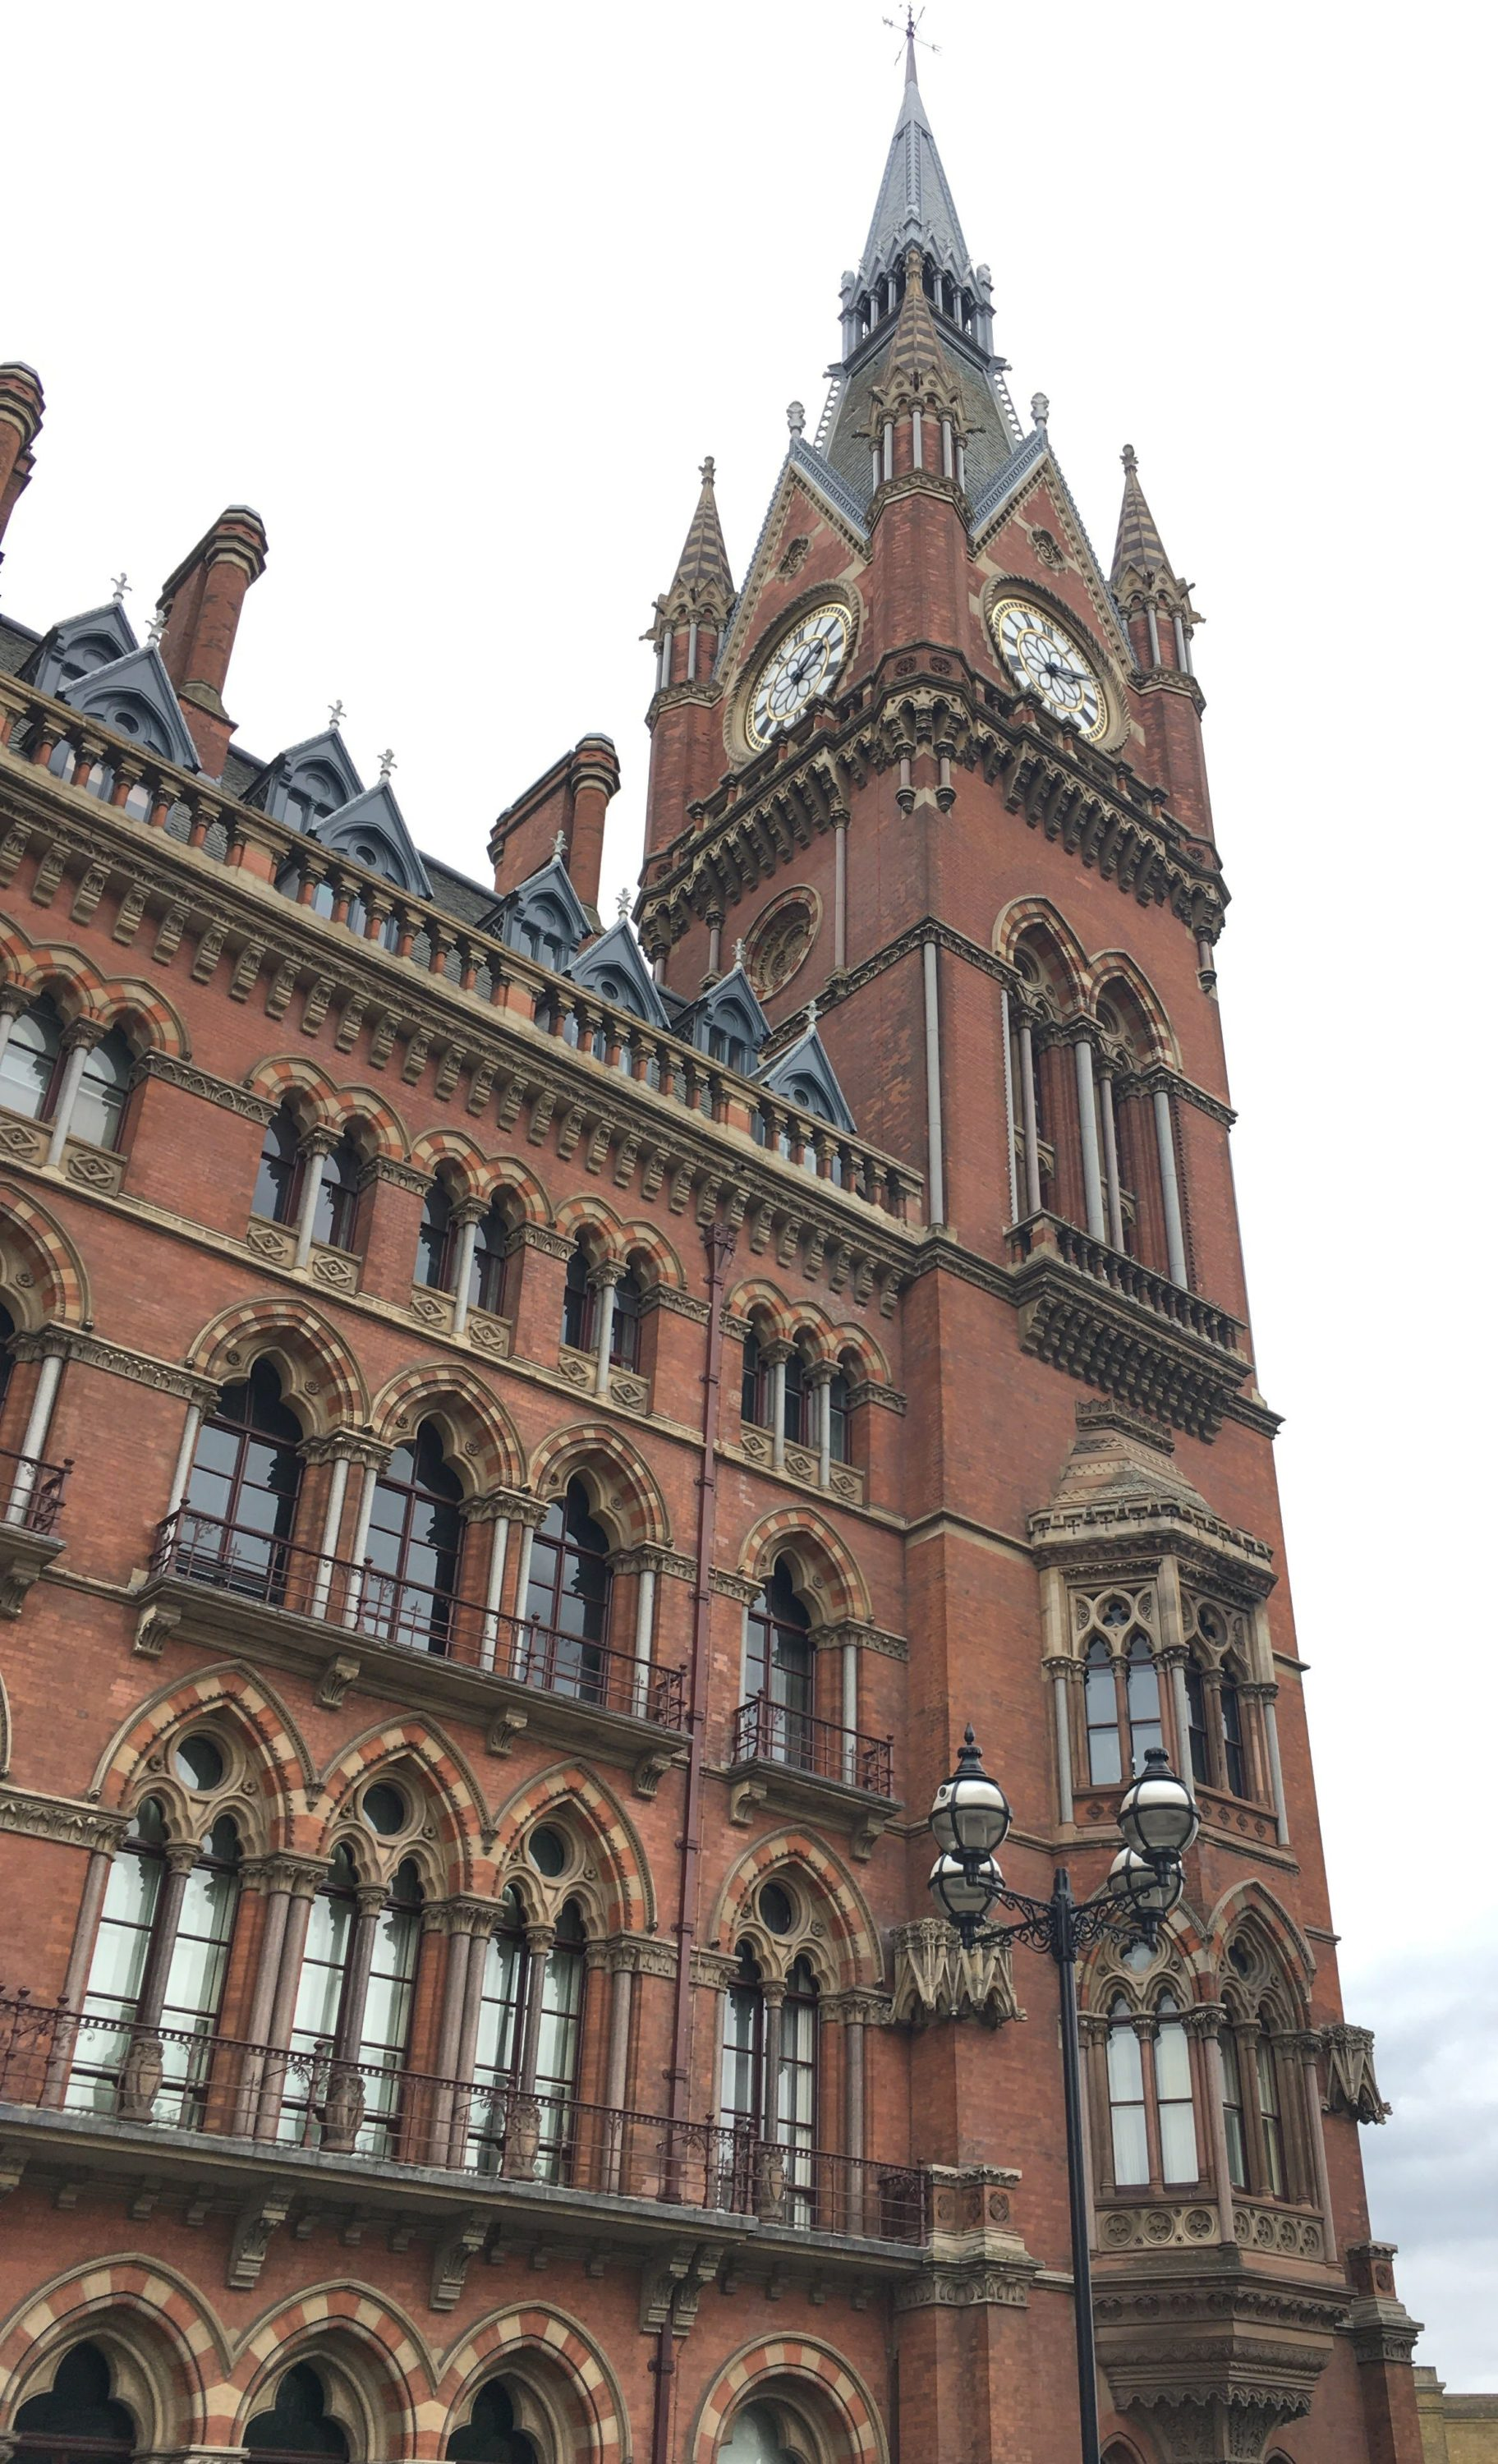 The Chambers and clocktower on the front of the station, lovely Victorian architecture.